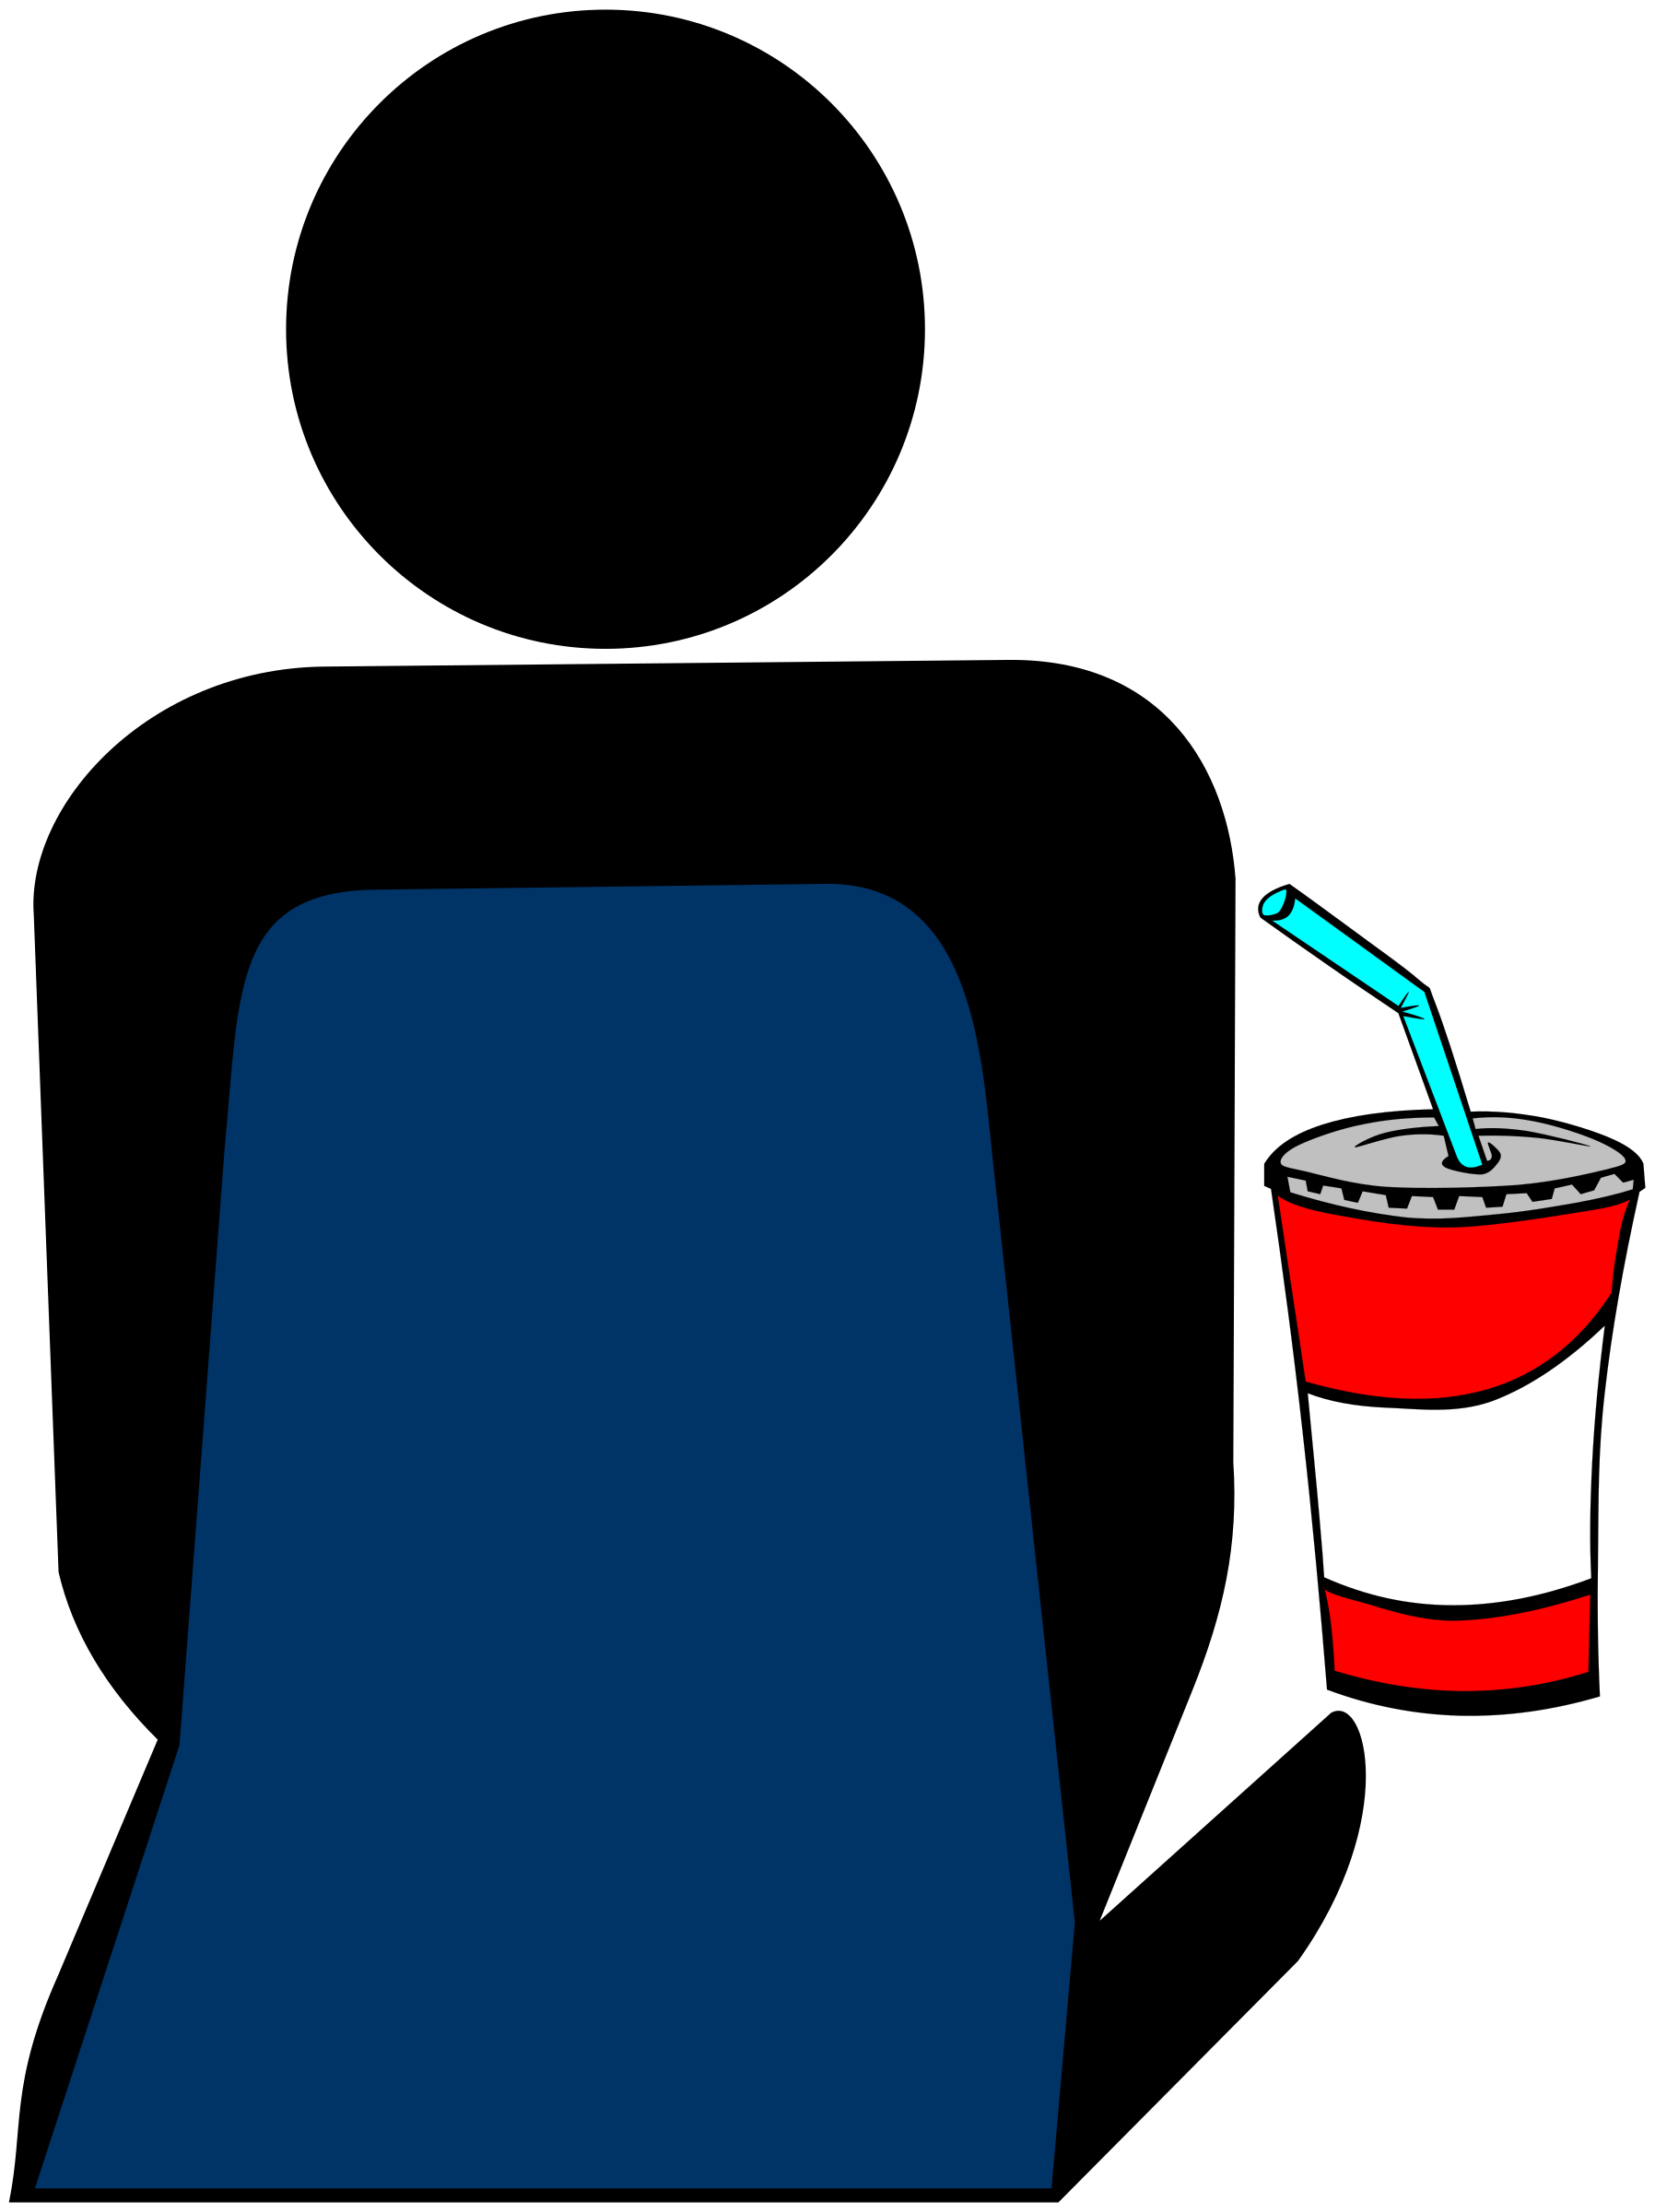 Film clipart drink. Cinema person with soft